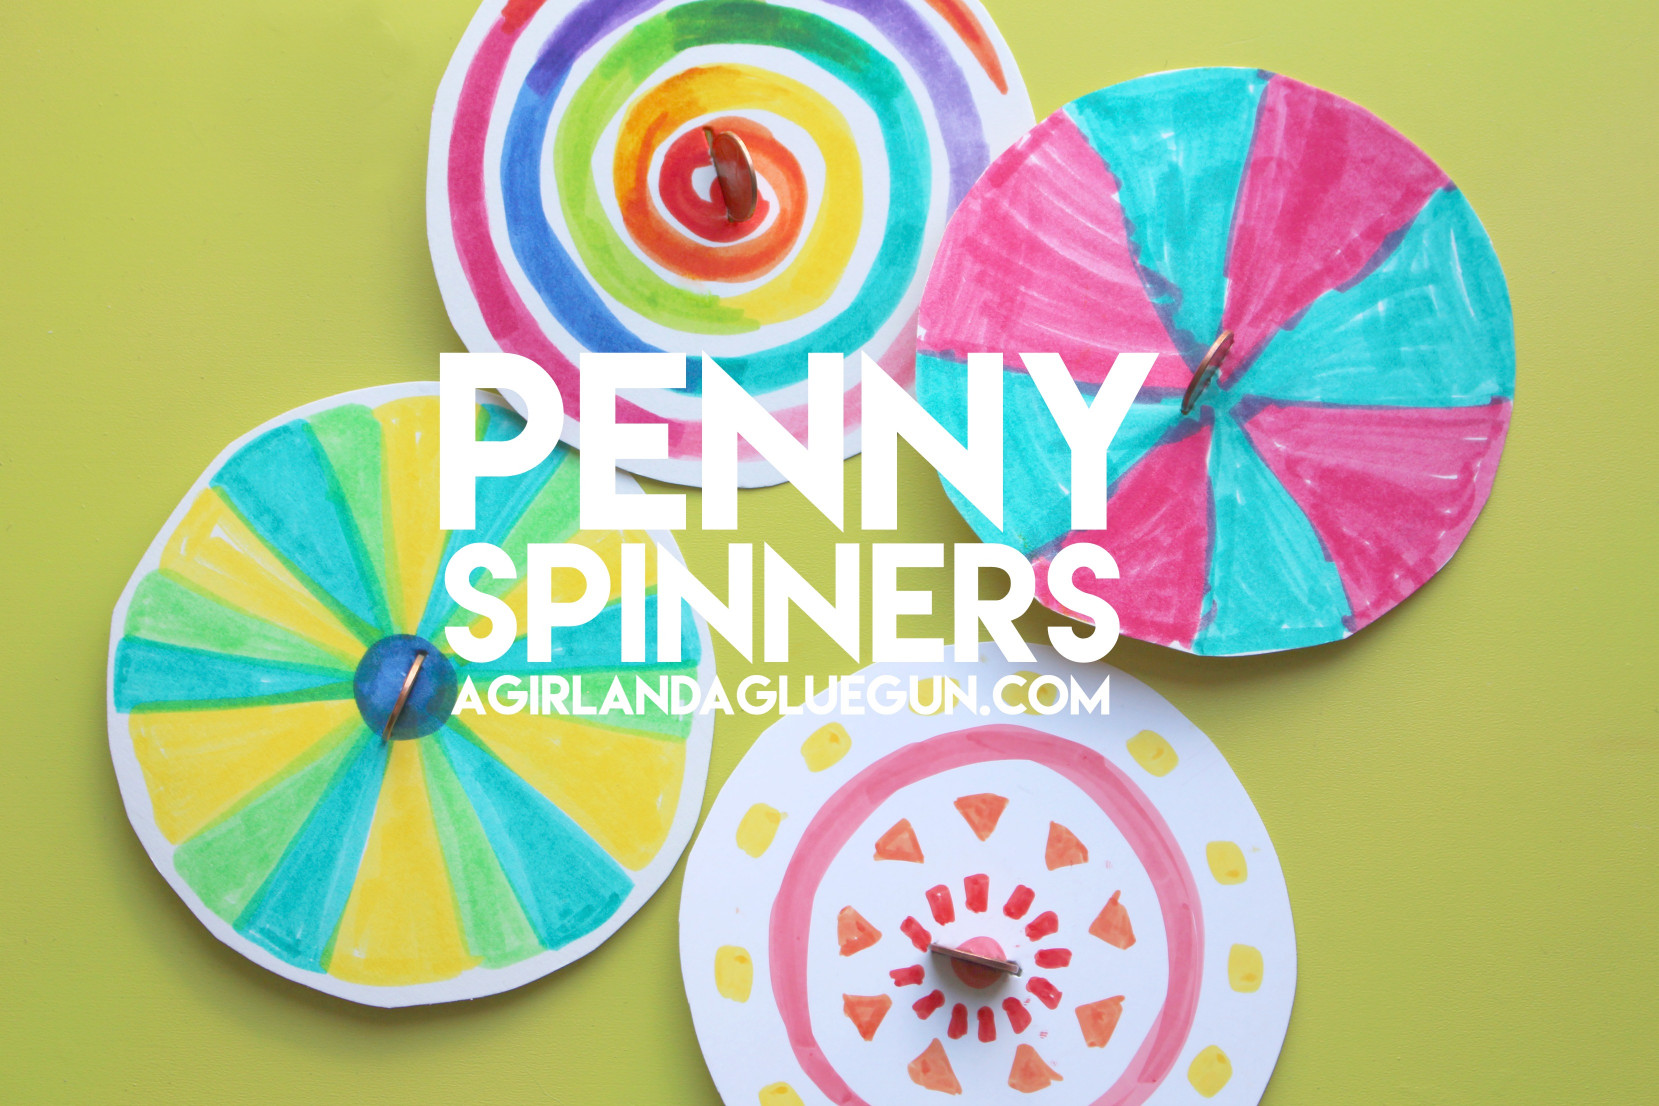 Fun Kids Crafts  penny spinners fun kids crafts Design Dazzle